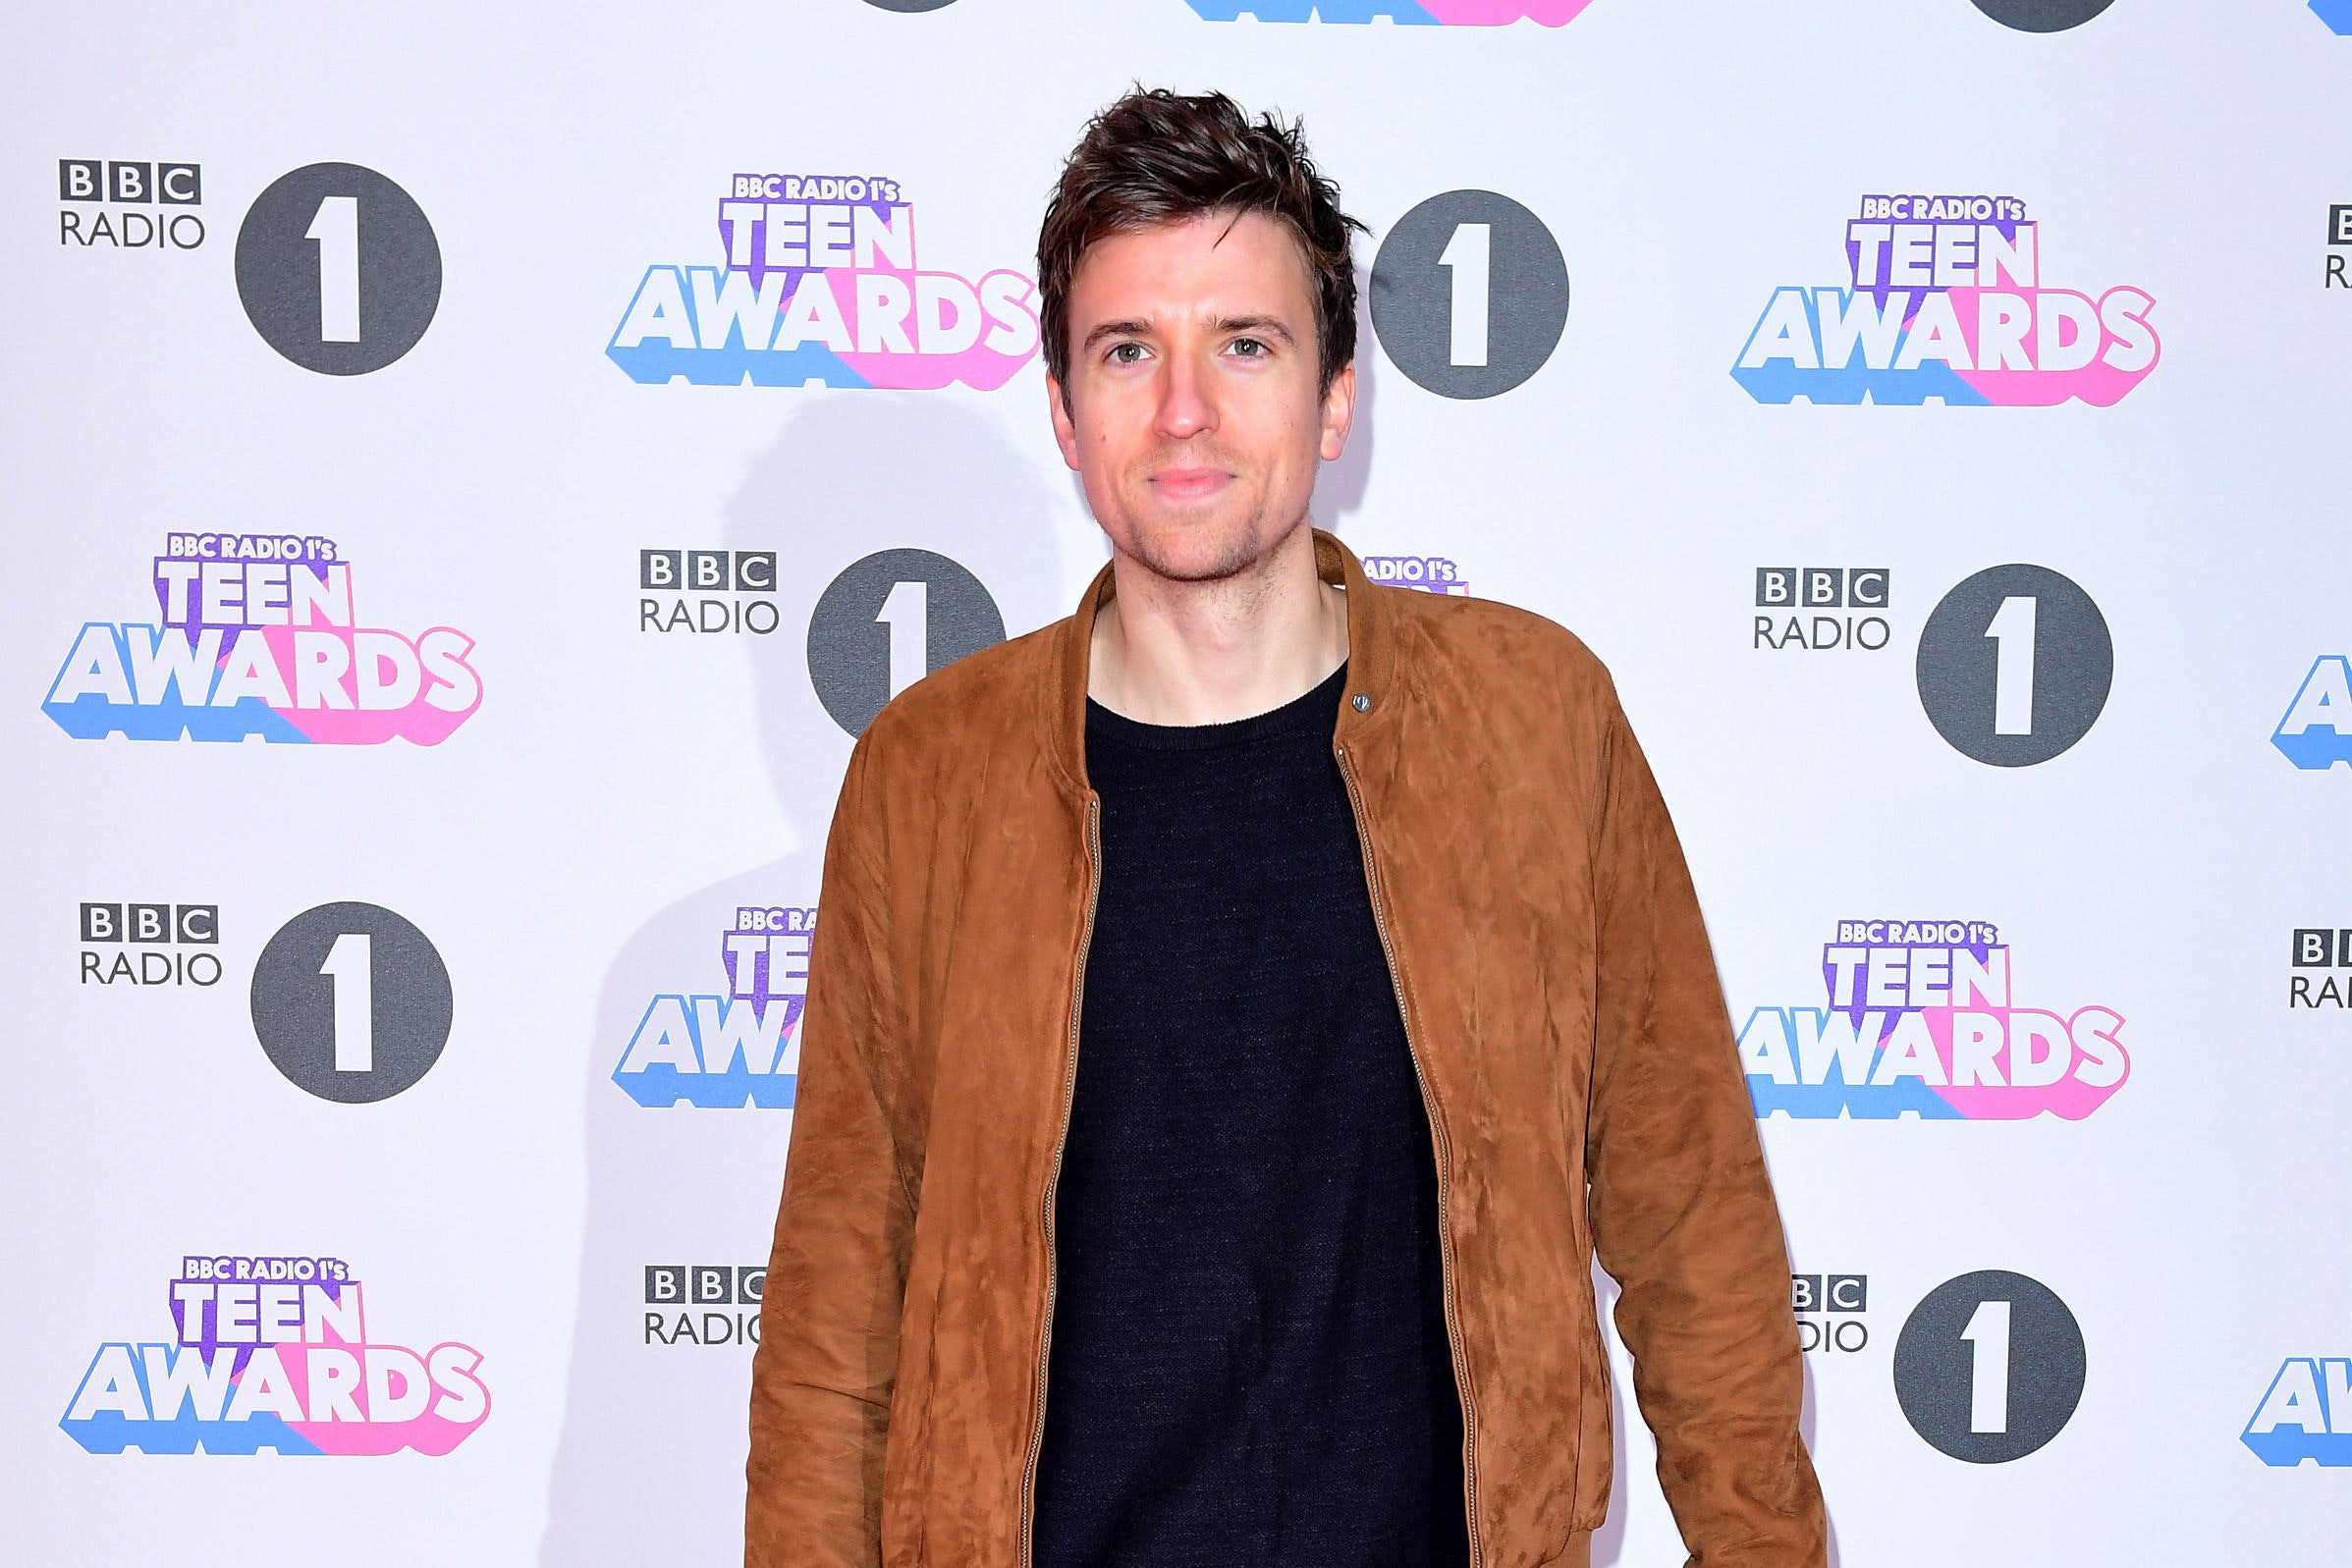 Greg James is the new host of the Radio 1 Breakfast Show